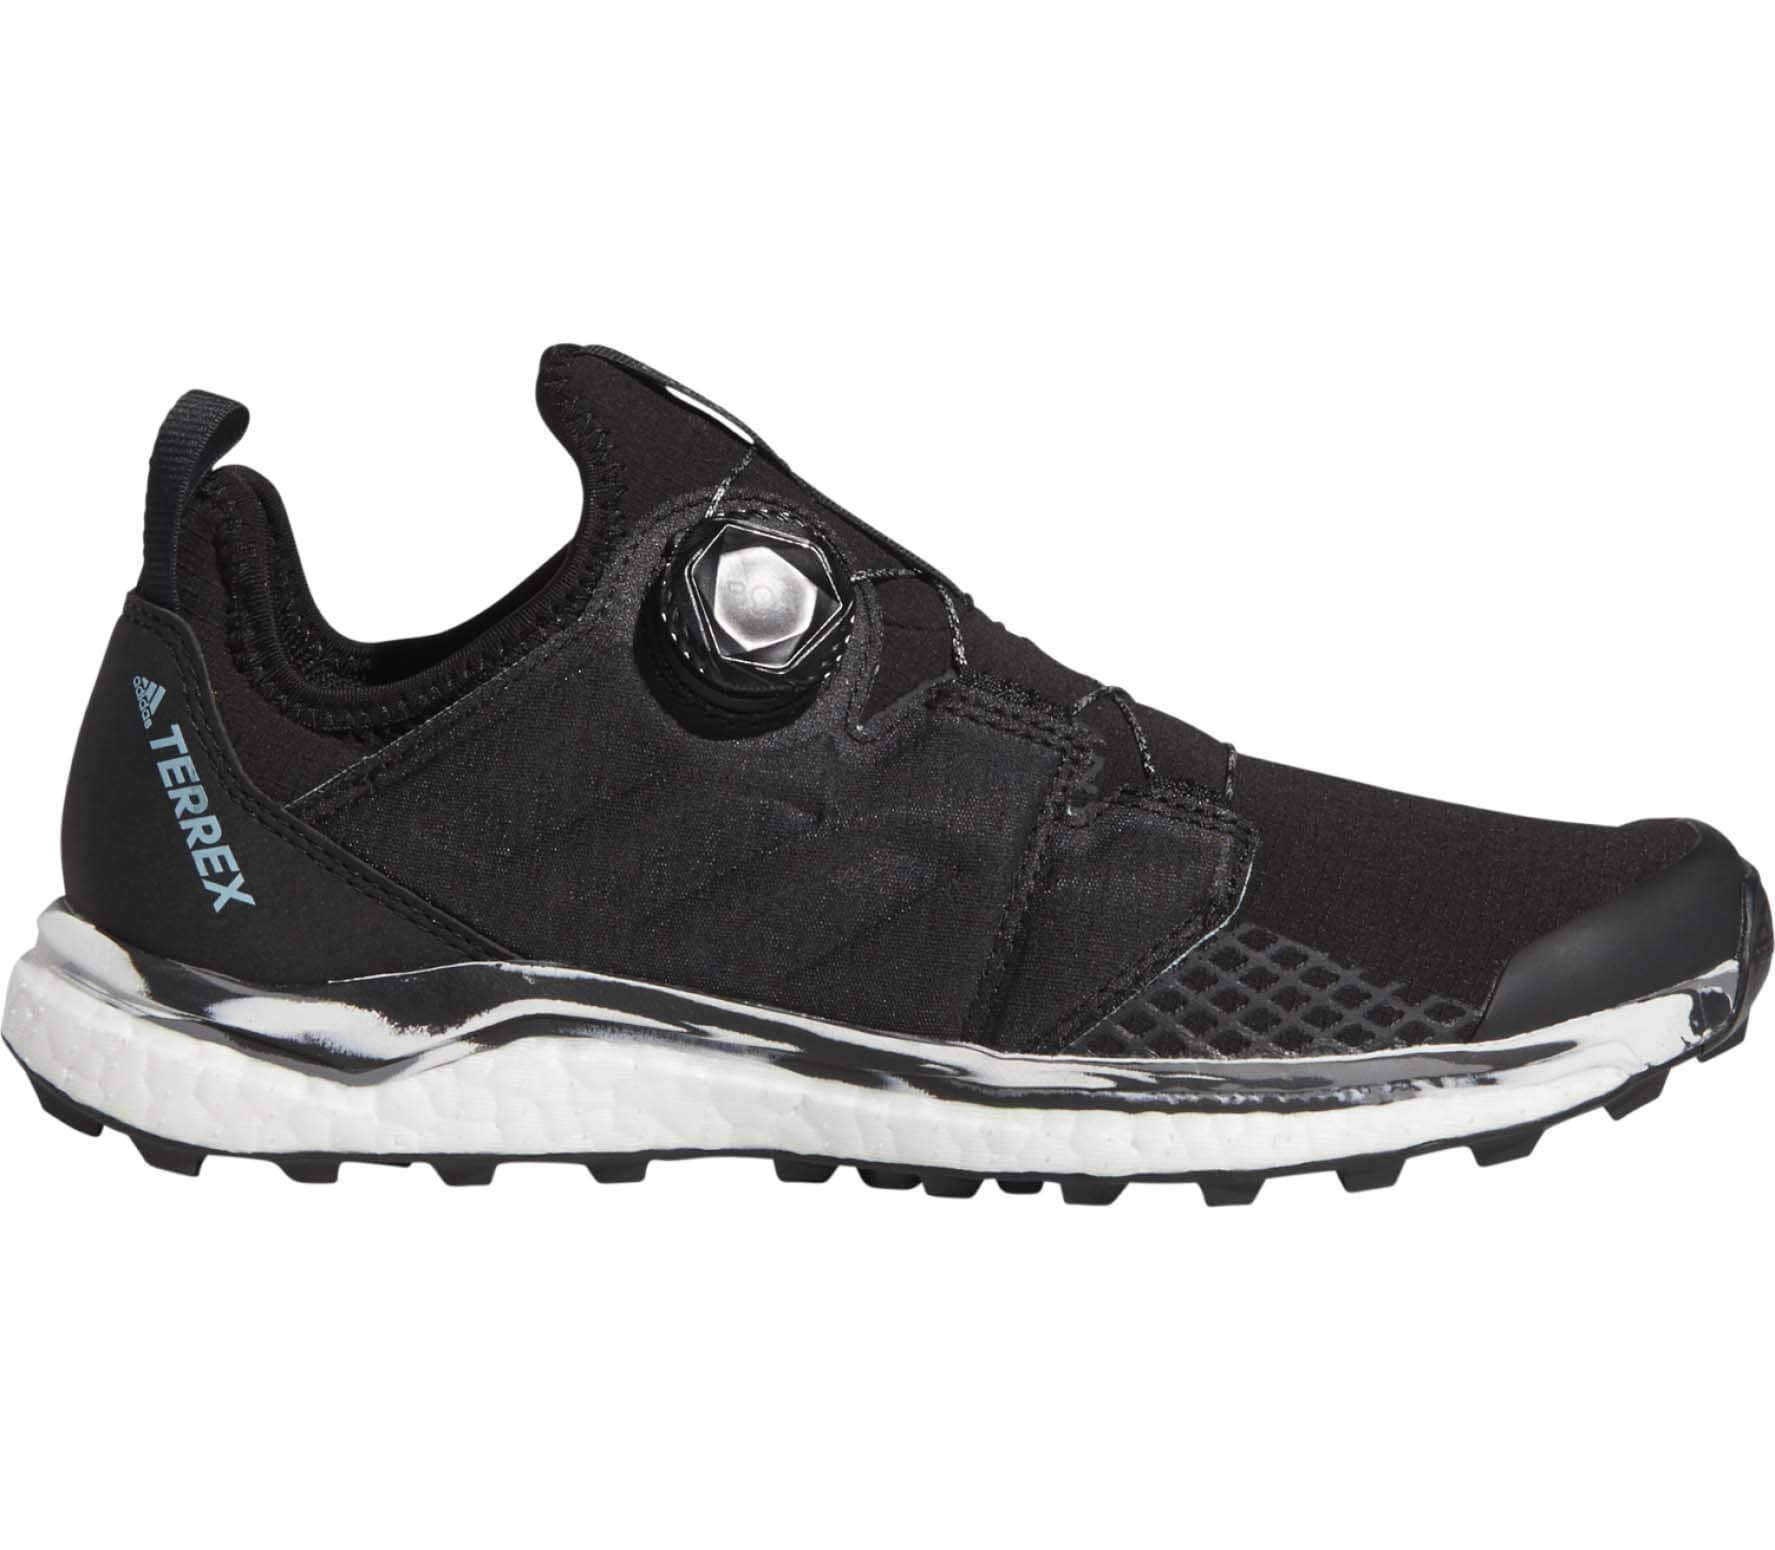 huge discount 4e2c1 a66b4 Agravic Boa women s trail running shoes (black)